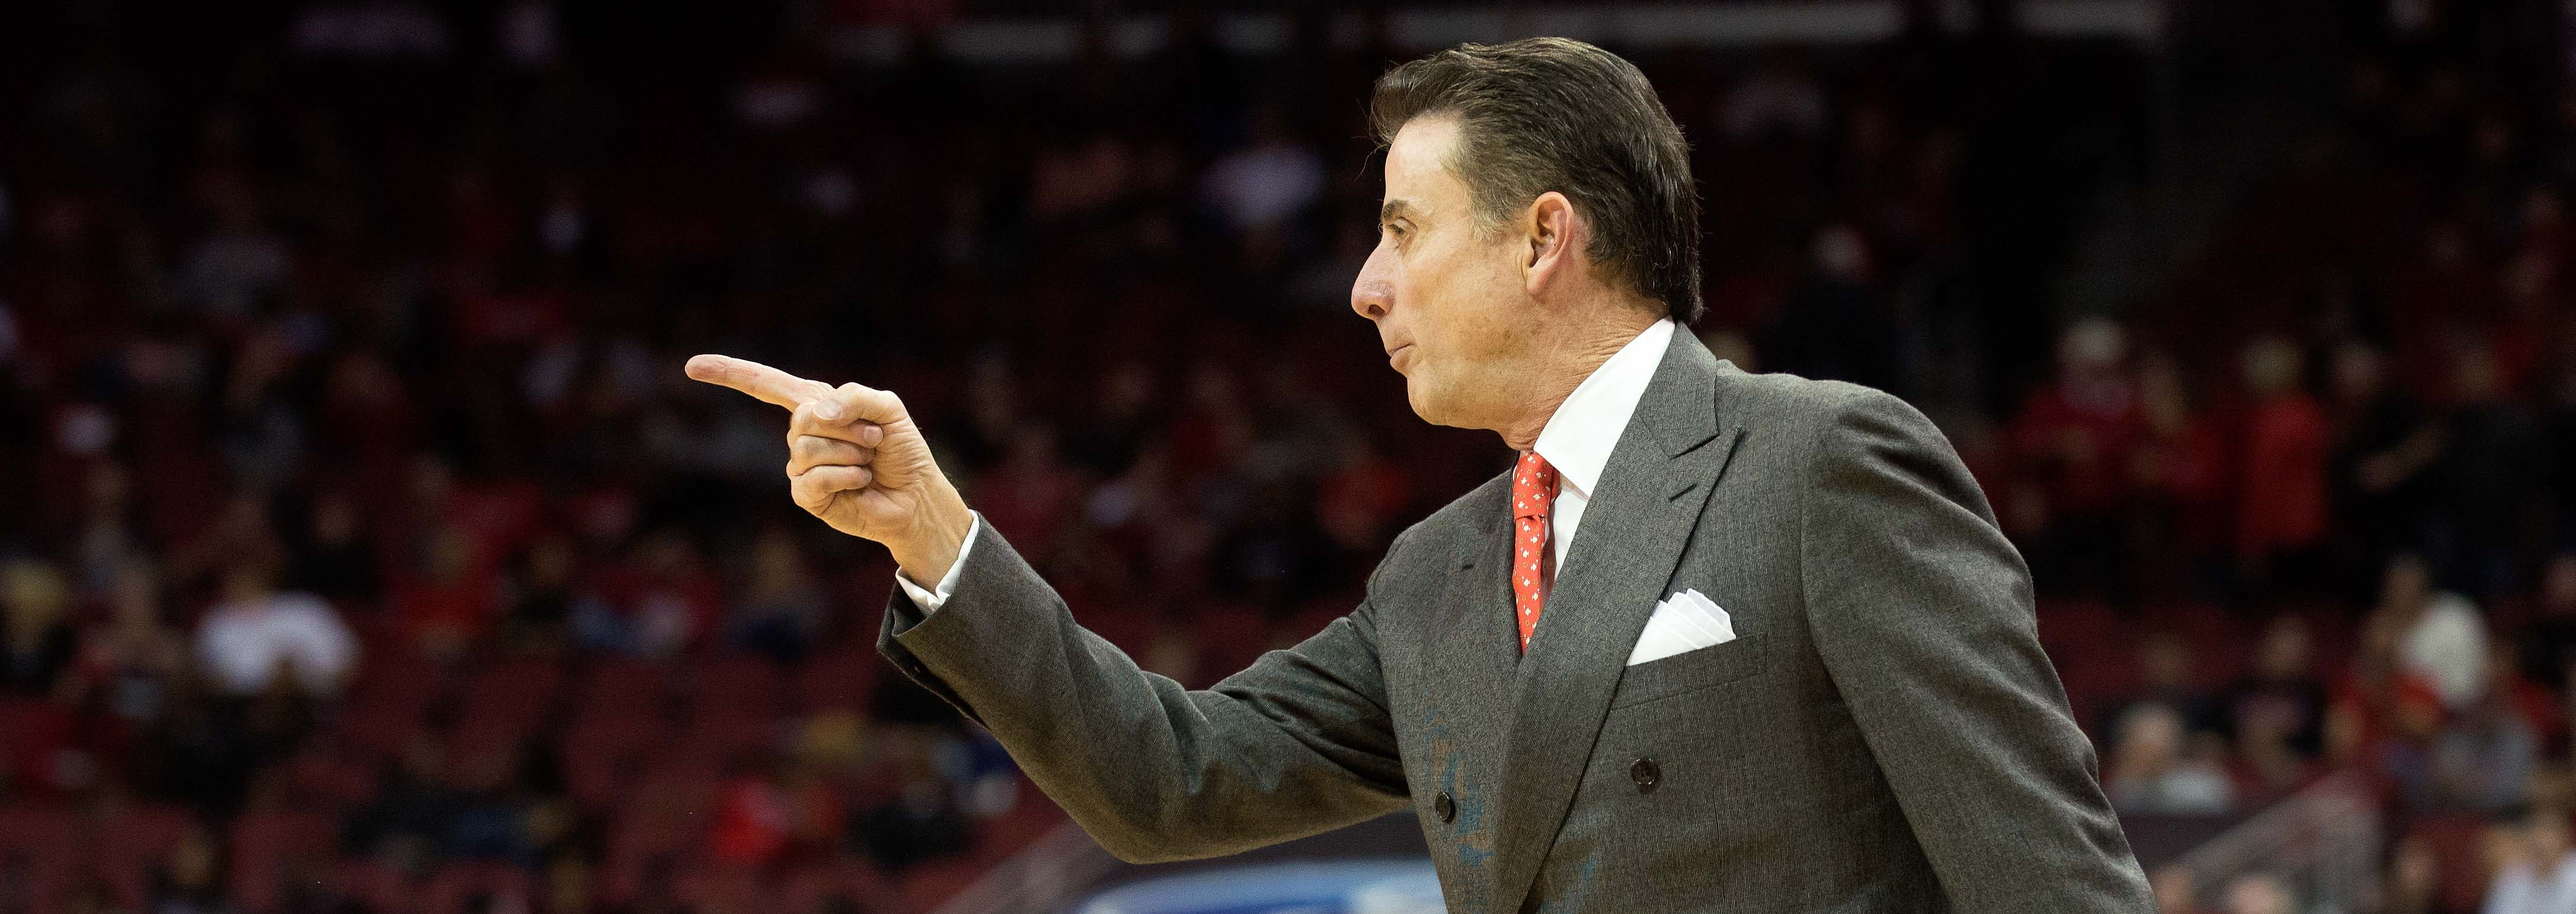 Pitino vs. Savannah State Photo by Adam Creech